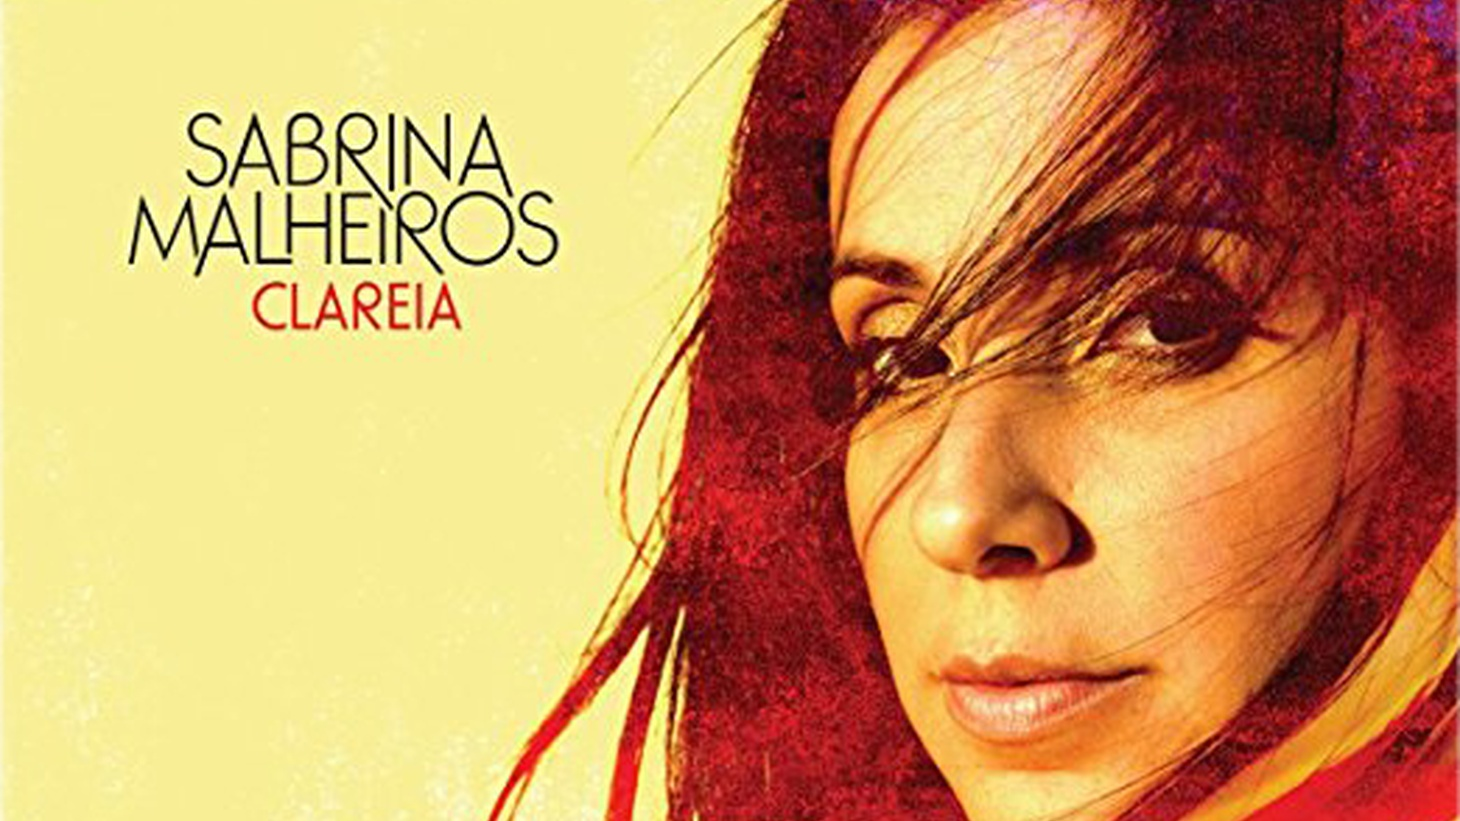 This week Rhythm Planet showcases new music from Brazilian songstress Sabrina Malheiros, some sweet Cuban son, a Coltrane classic performed by saxophonists Dave Liebman and Joe Lovano, and other choice gems.